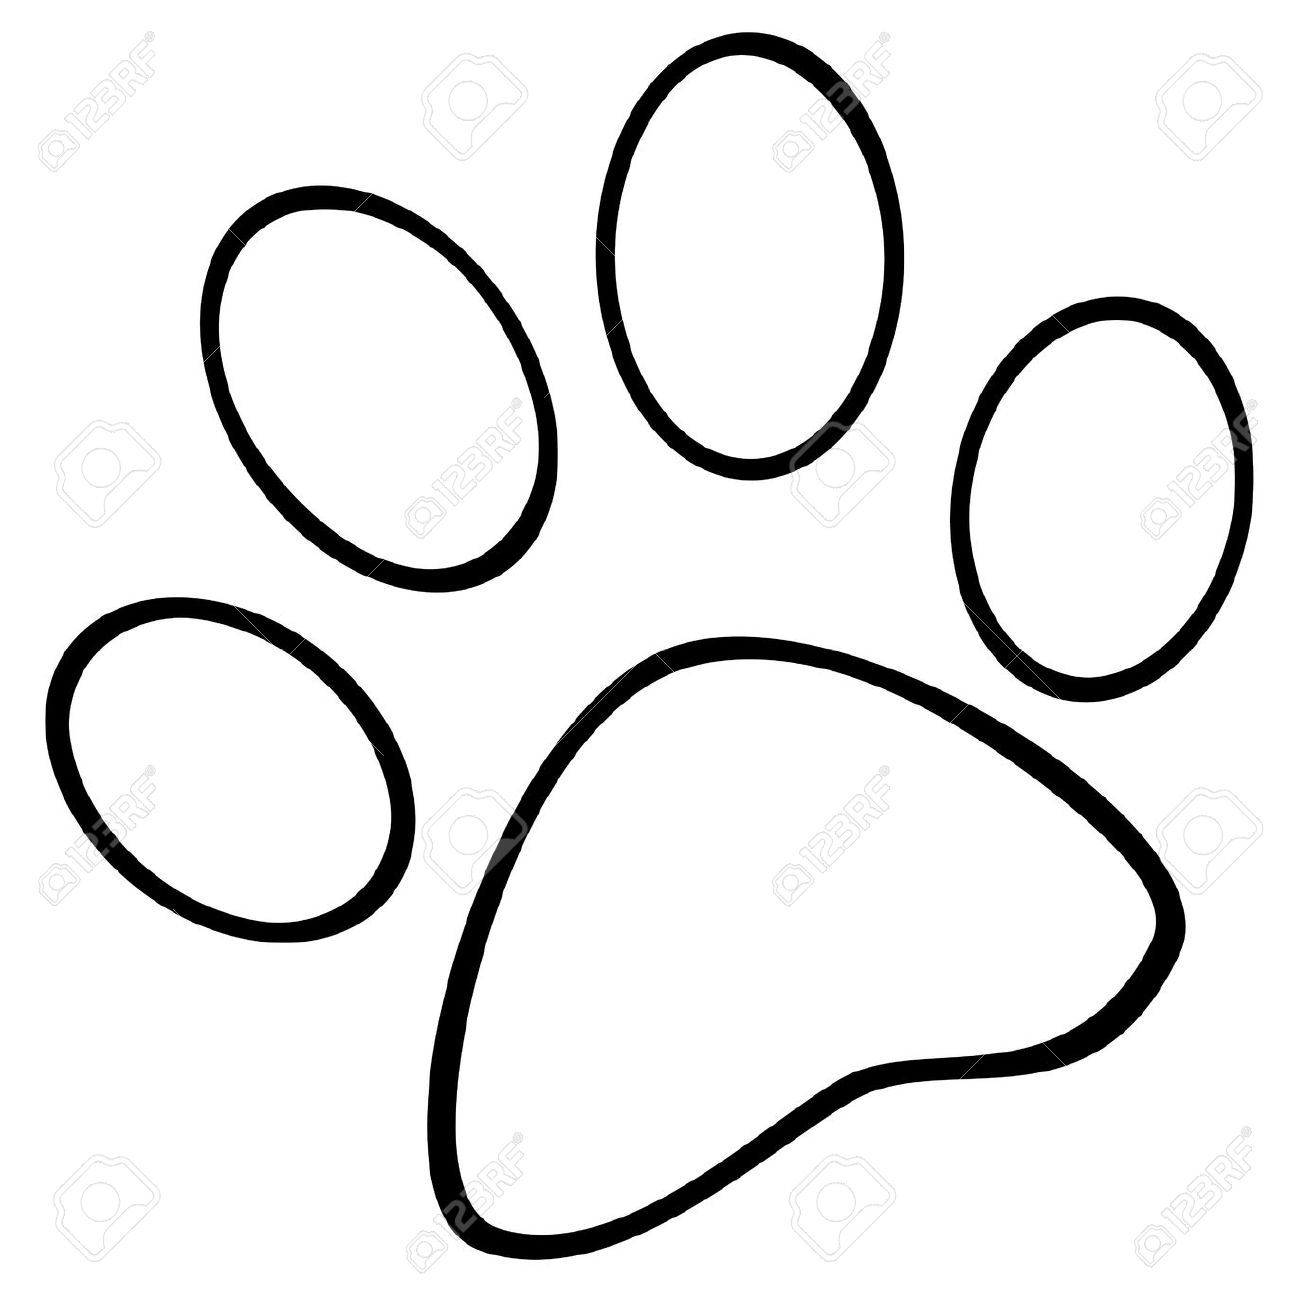 Dog Paw Print Outline Free download